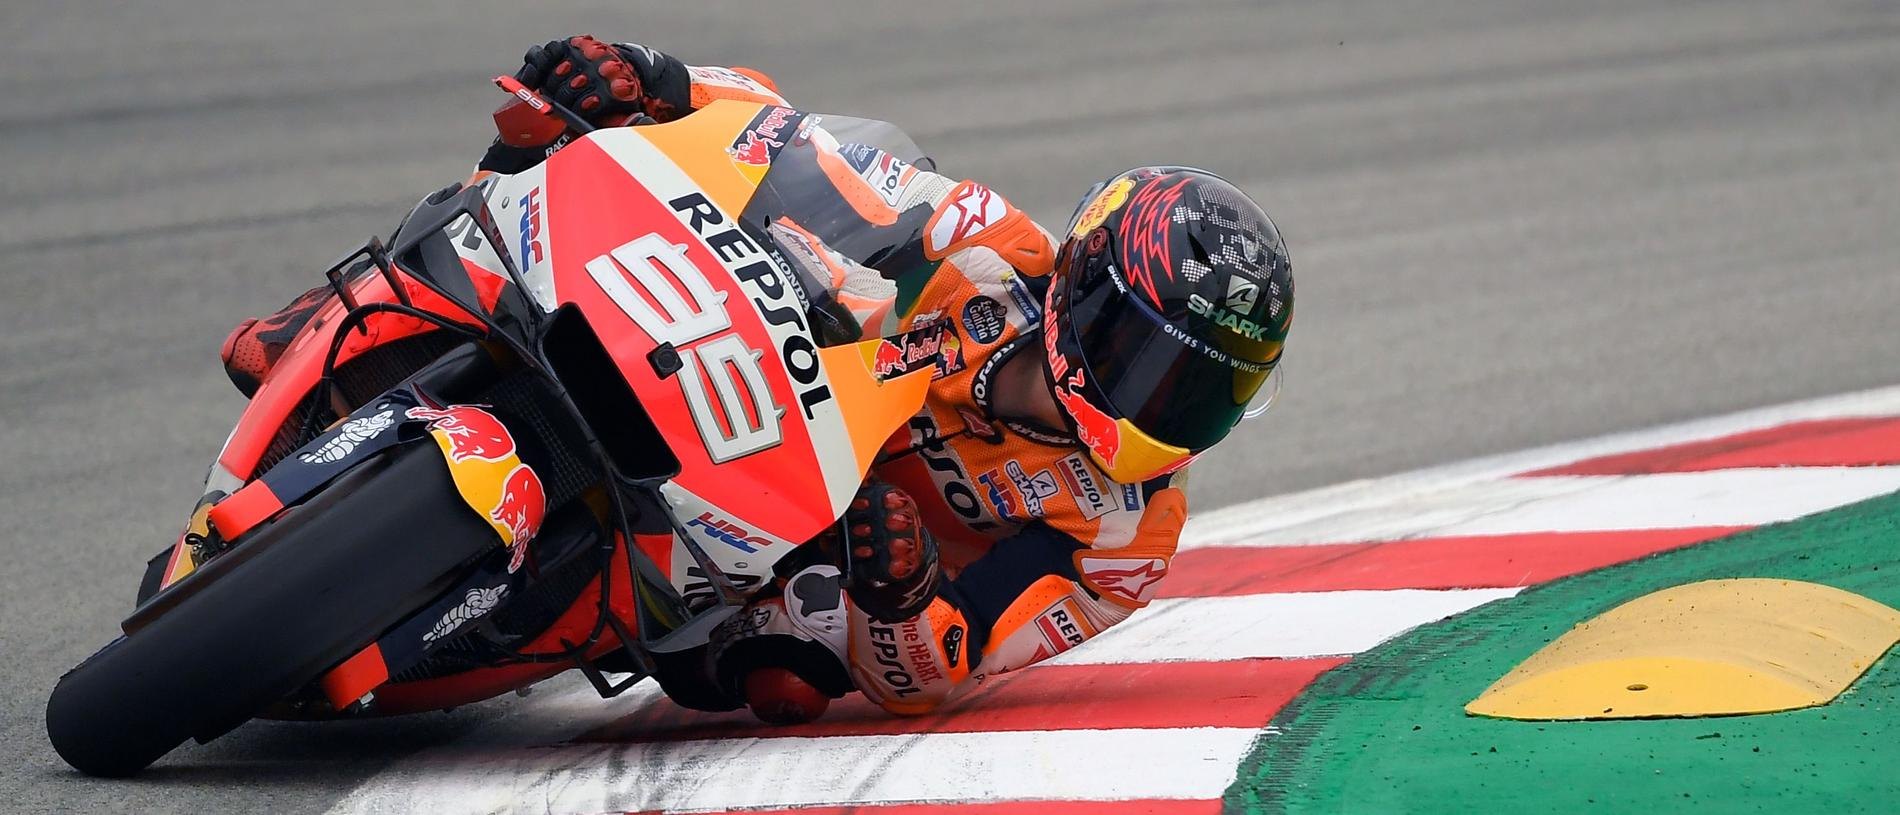 Repsol Honda Team's Spanish rider Jorge Lorenzo rides during the Catalunya MotoGP Grand Prix first free practice session at the Catalunya racetrack in Montmelo, near Barcelona, on June 14, 2019. (Photo by LLUIS GENE / AFP) (Photo credit should read LLUIS GENE/AFP/Getty Images)